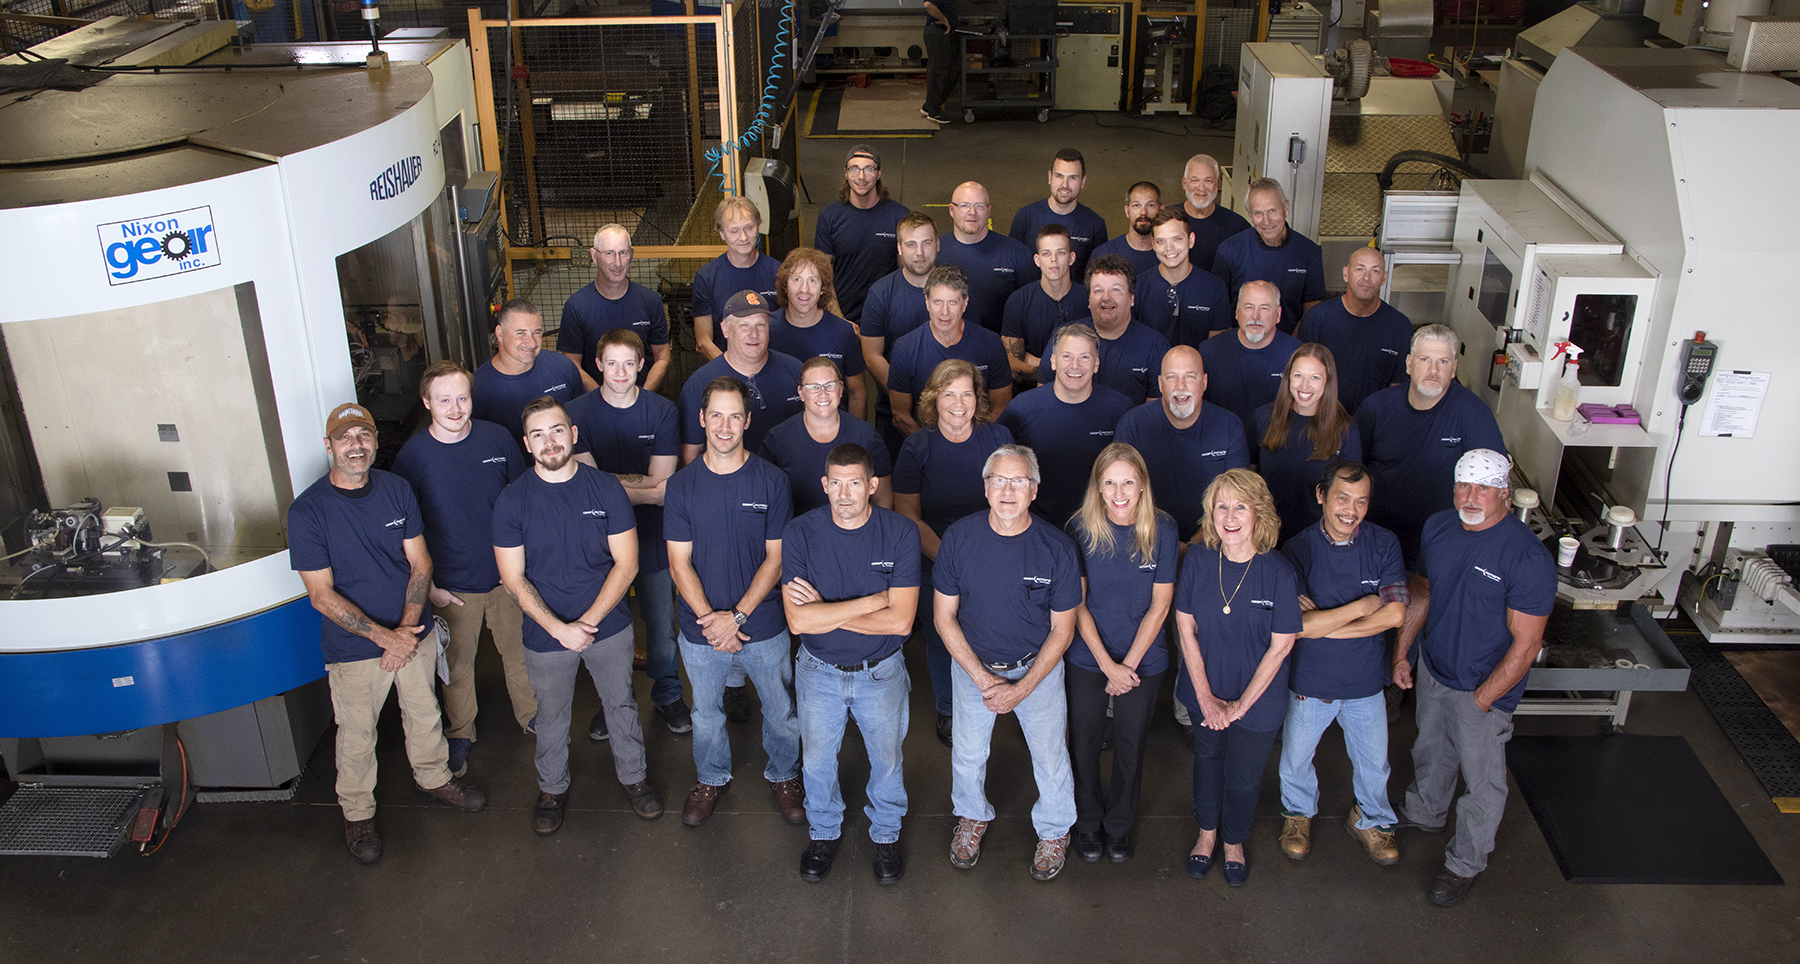 The Employee Owners at Gear Motions Syracuse Nixon Gear Division